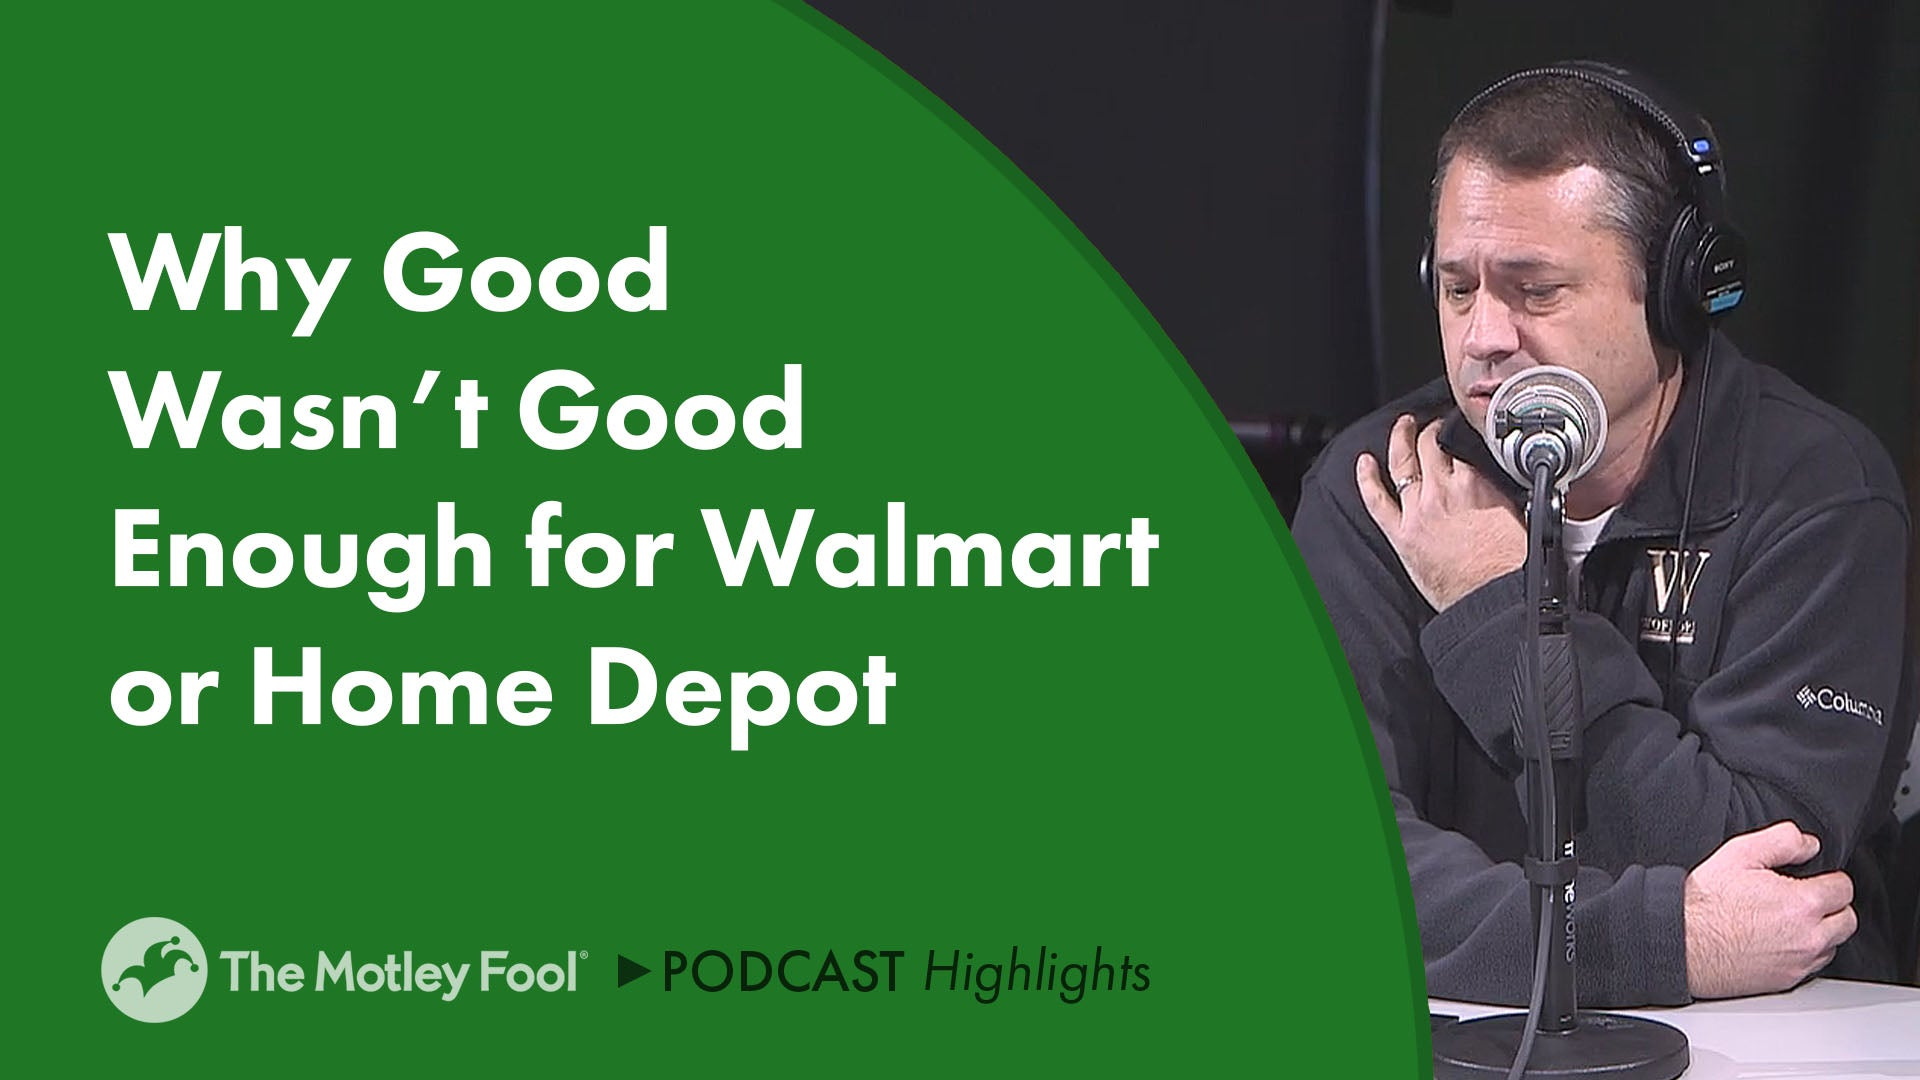 08bc170e5b1 Why Good Wasn t Good Enough for Walmart or Home Depot -- The Motley Fool